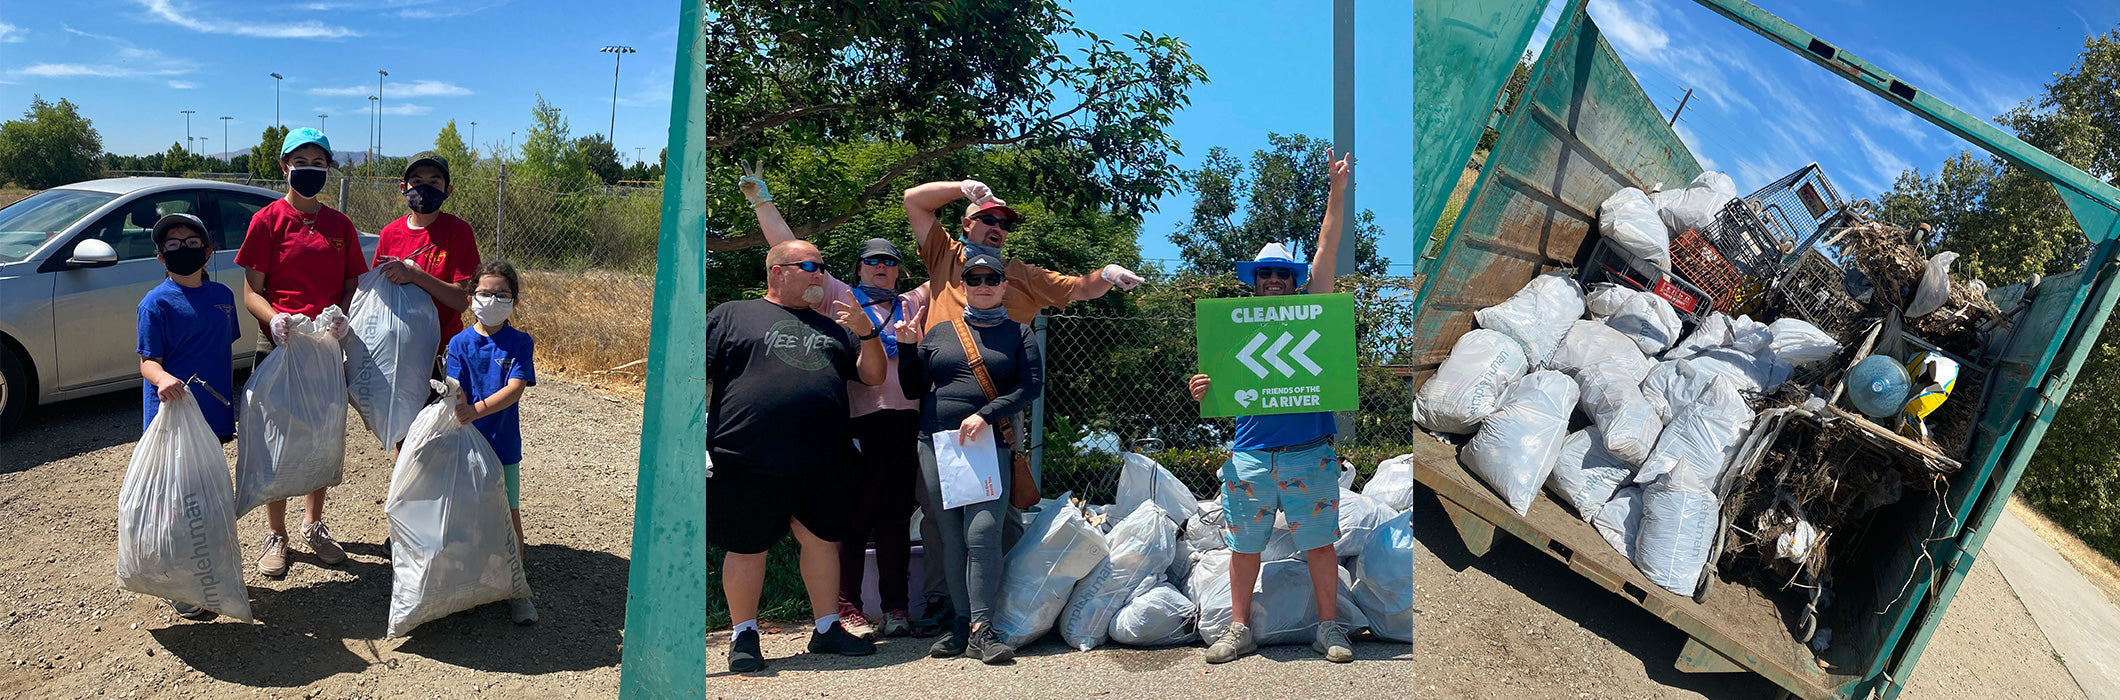 LA River CleanUp Event Photos: kids holding trash bags, left; adults with trash bags and sign, center; dumpster filled with trash bags and trash, right